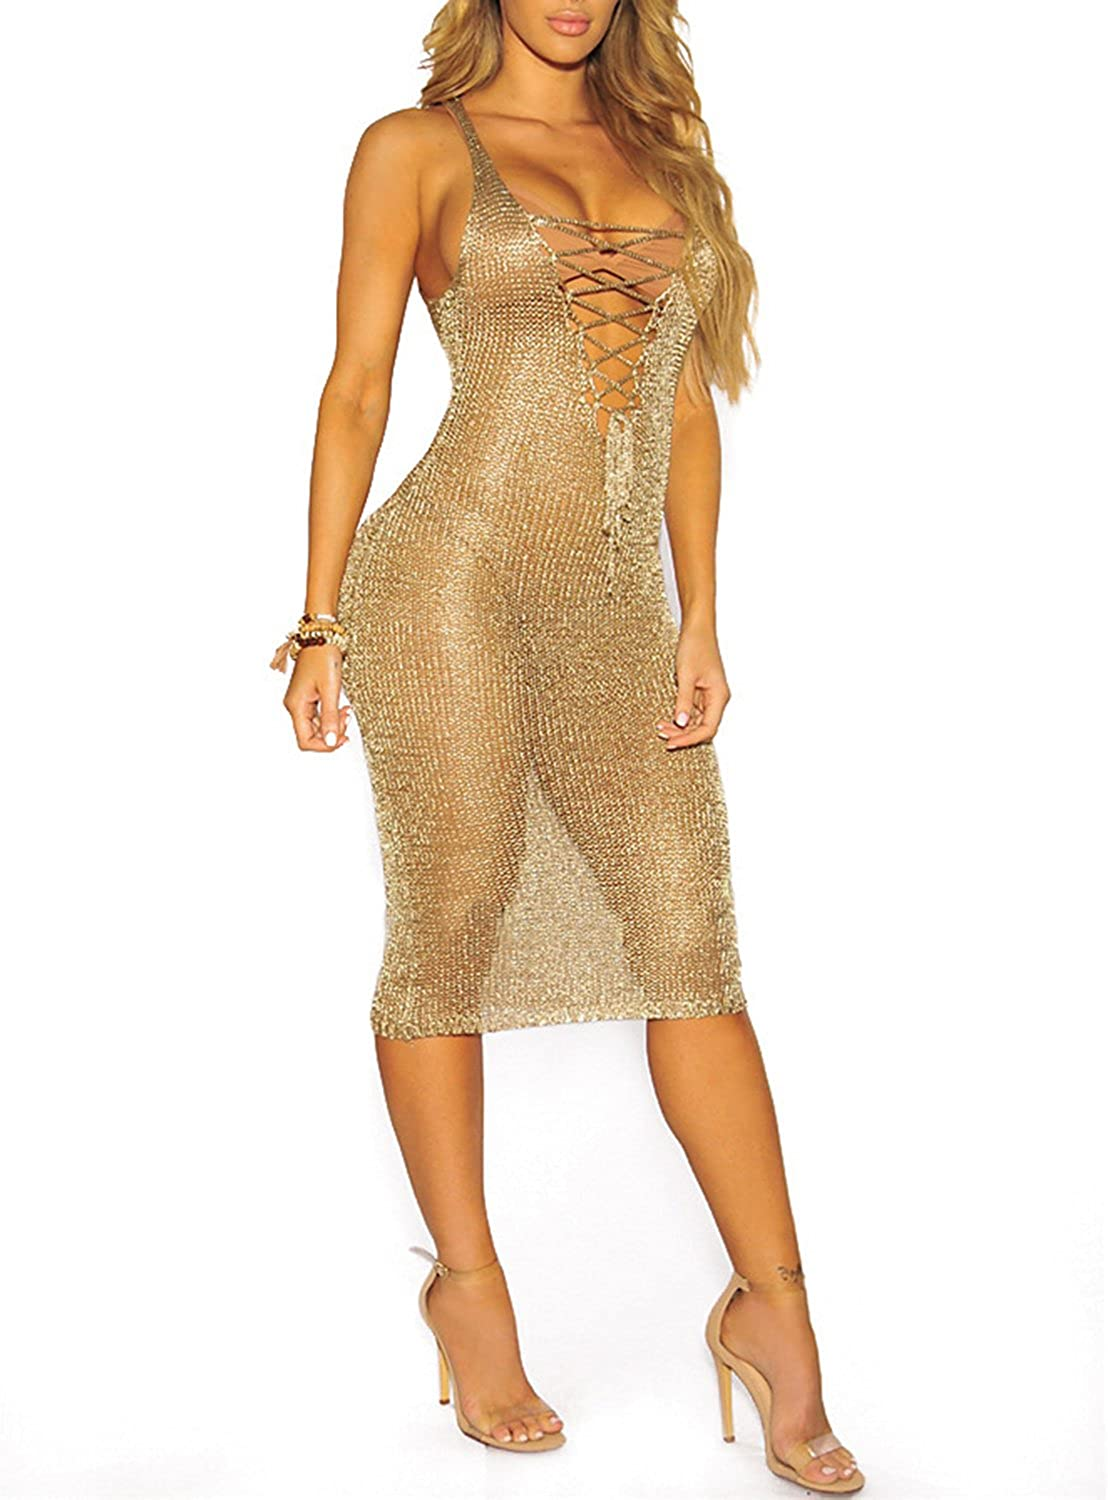 Glamaker Women's Sexy Party See Through Mesh Dress Midi Sleeveless